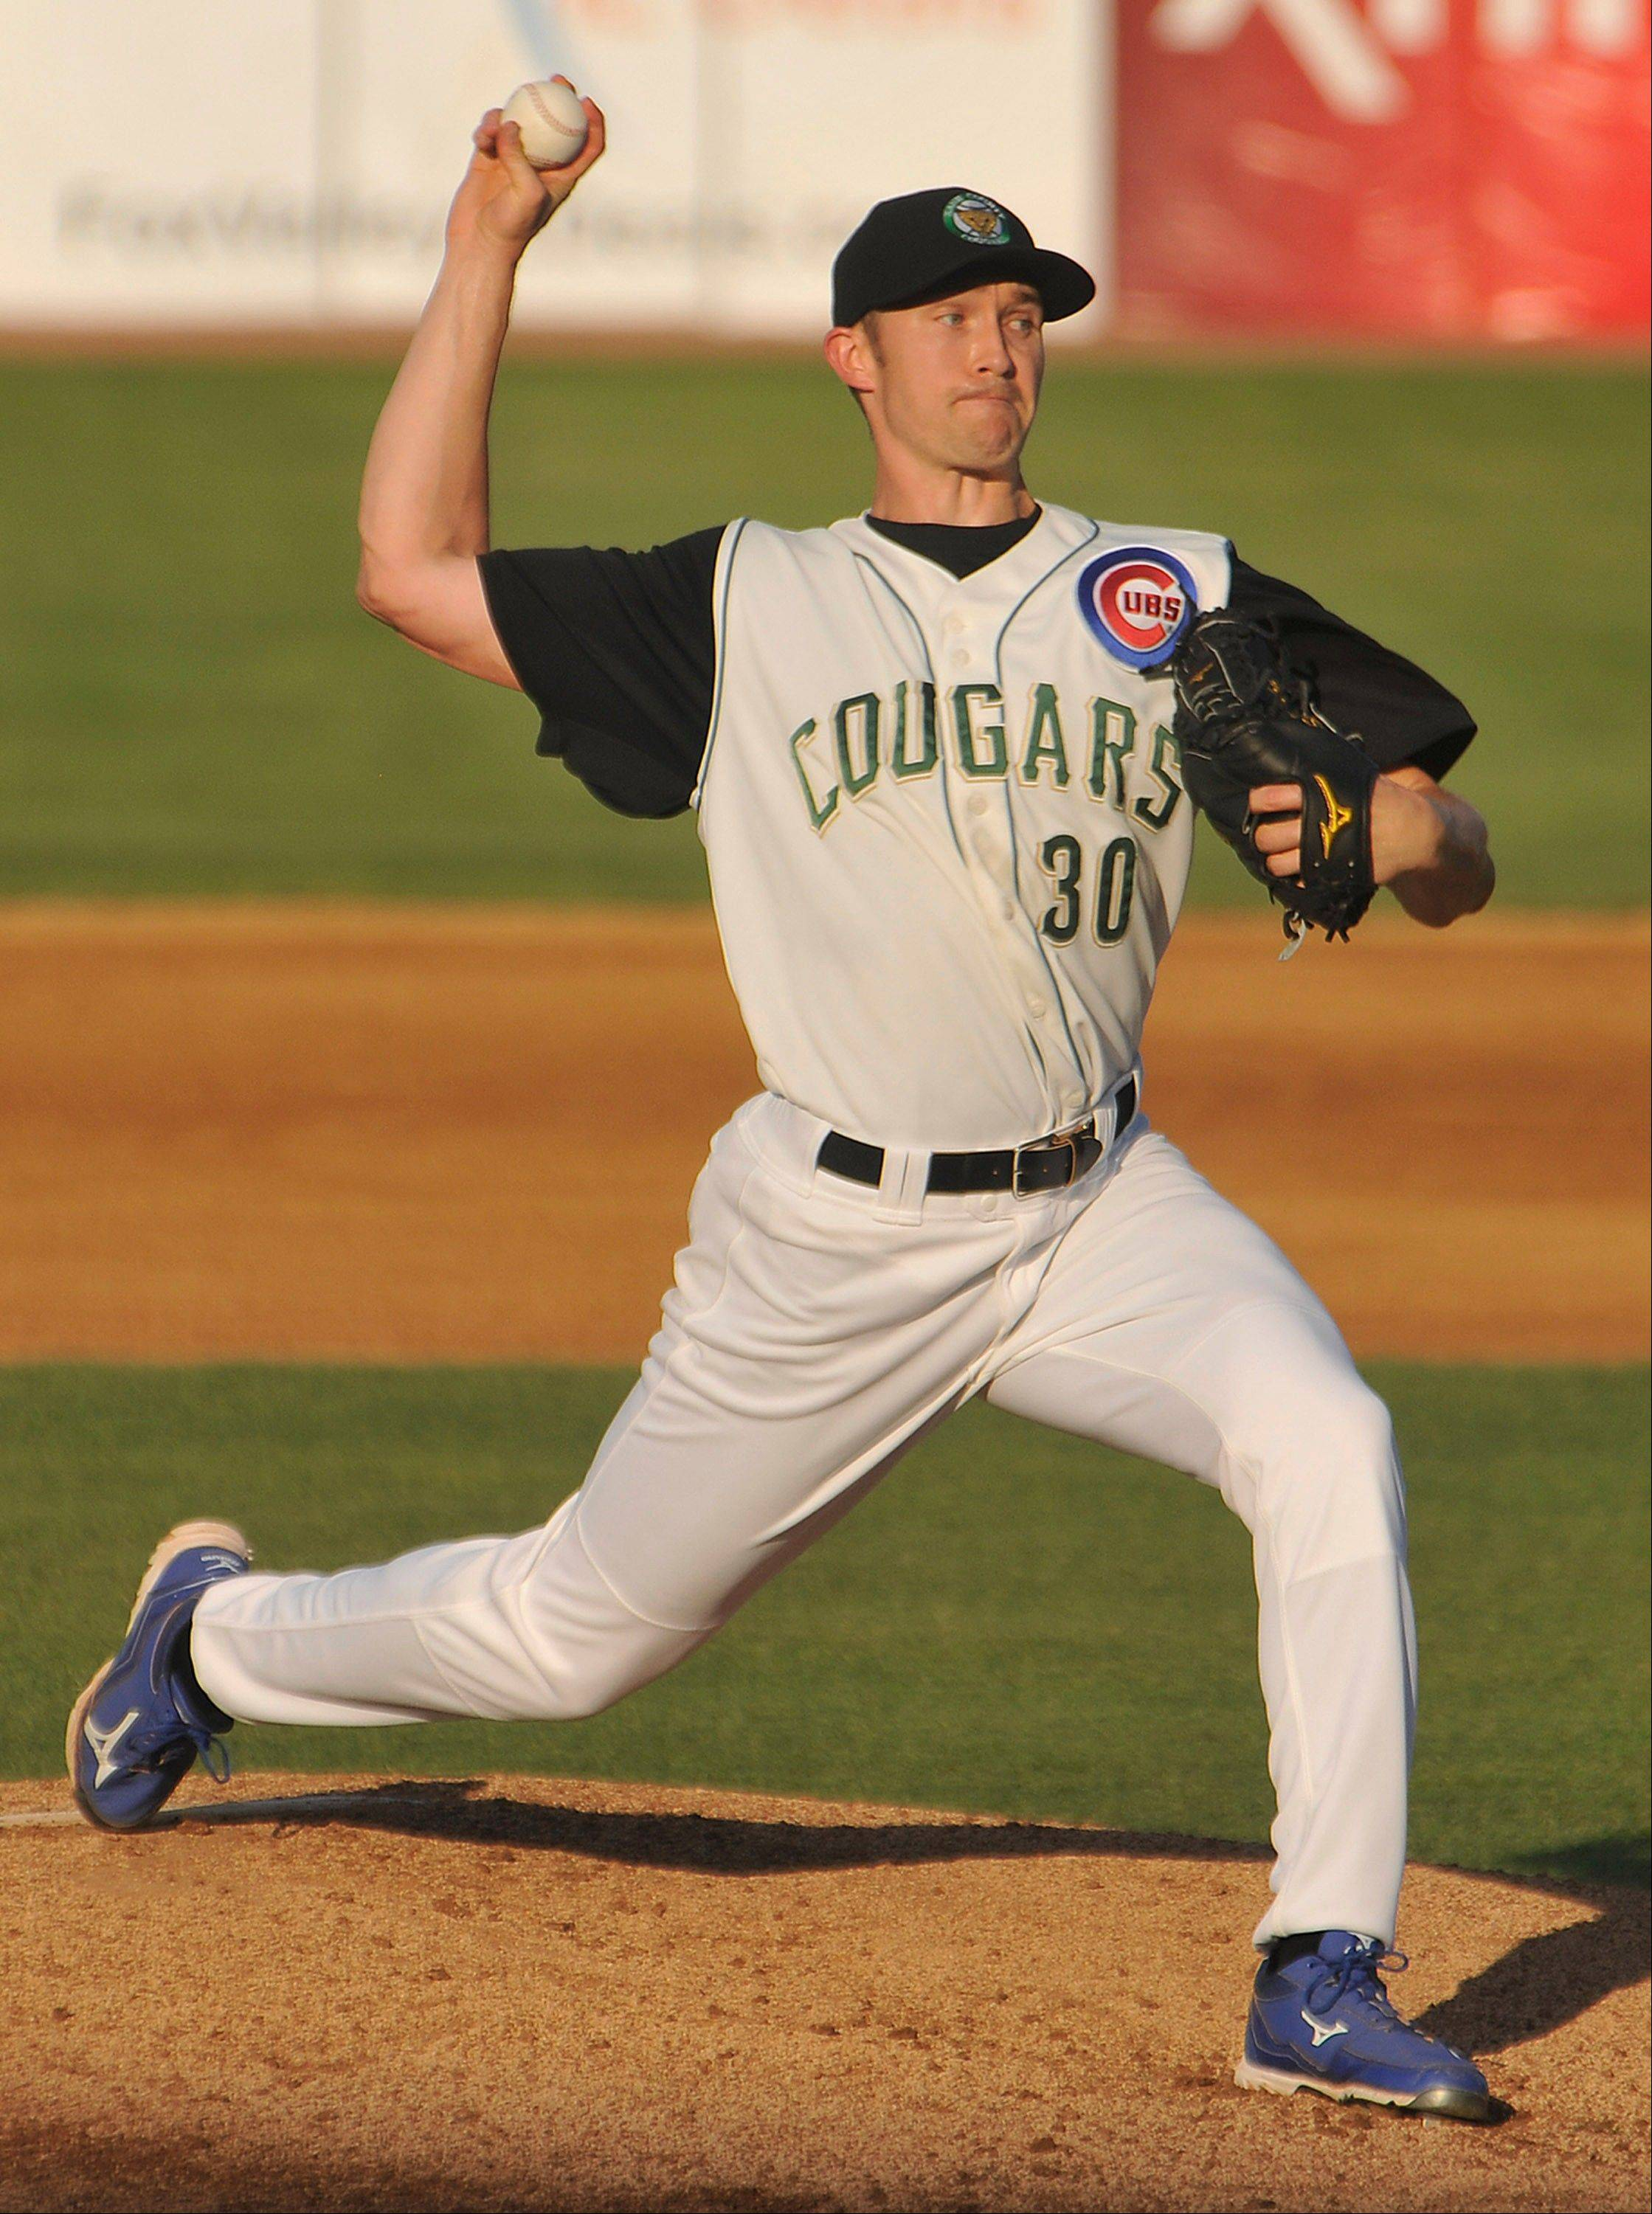 Cubs right hander Scott Baker makes a rehab start Friday for the Kane County Cougars at Fifth Third Ballpark in Geneva on Friday. Baker lasted just 22⁄3 innings, allowing 6 runs on 6 hits.